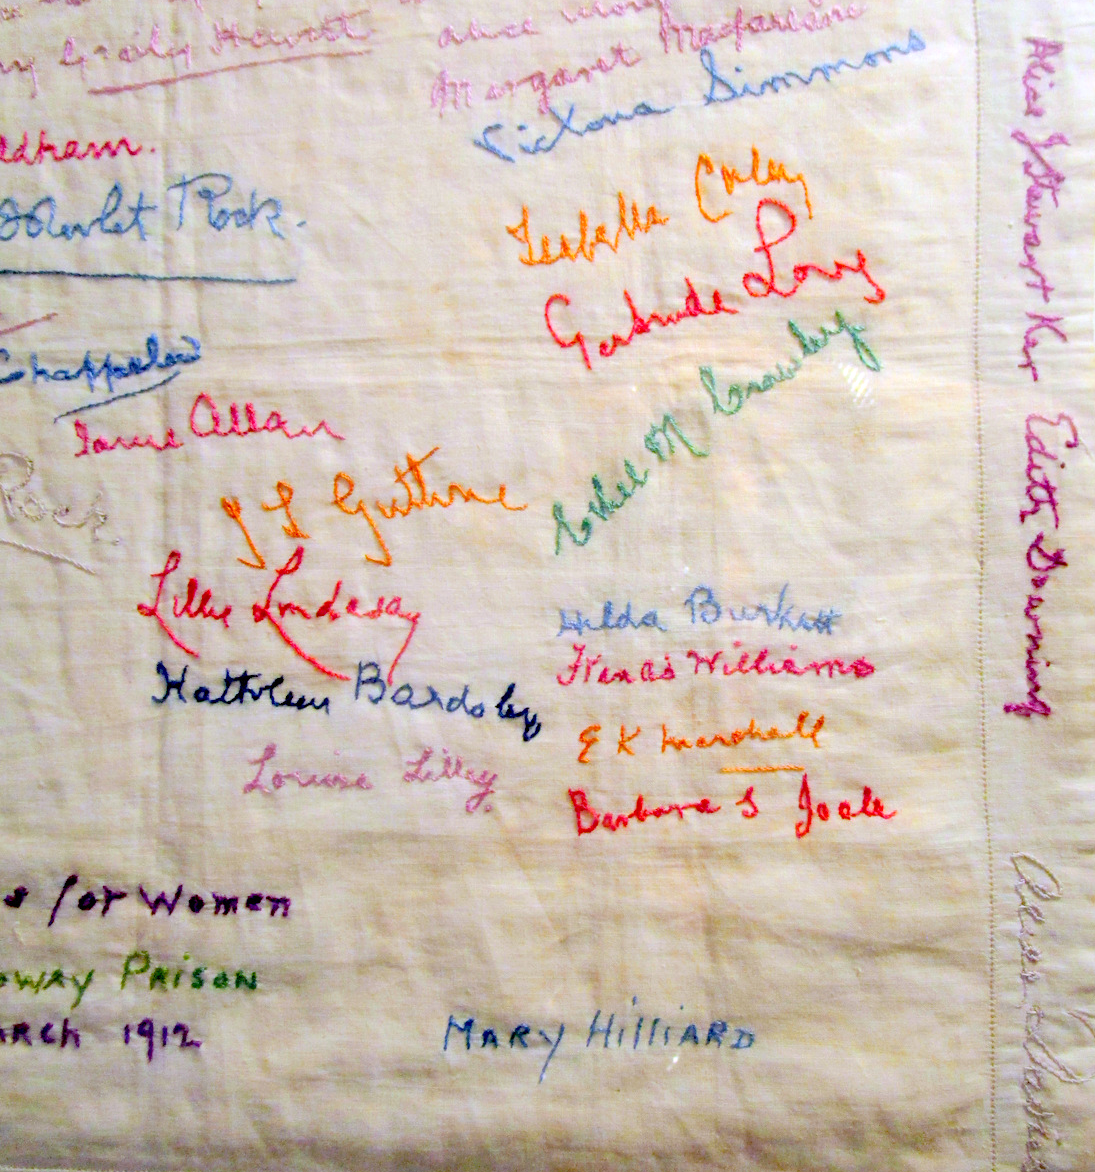 Embroidery by Holloway prisoners Suffragette movement